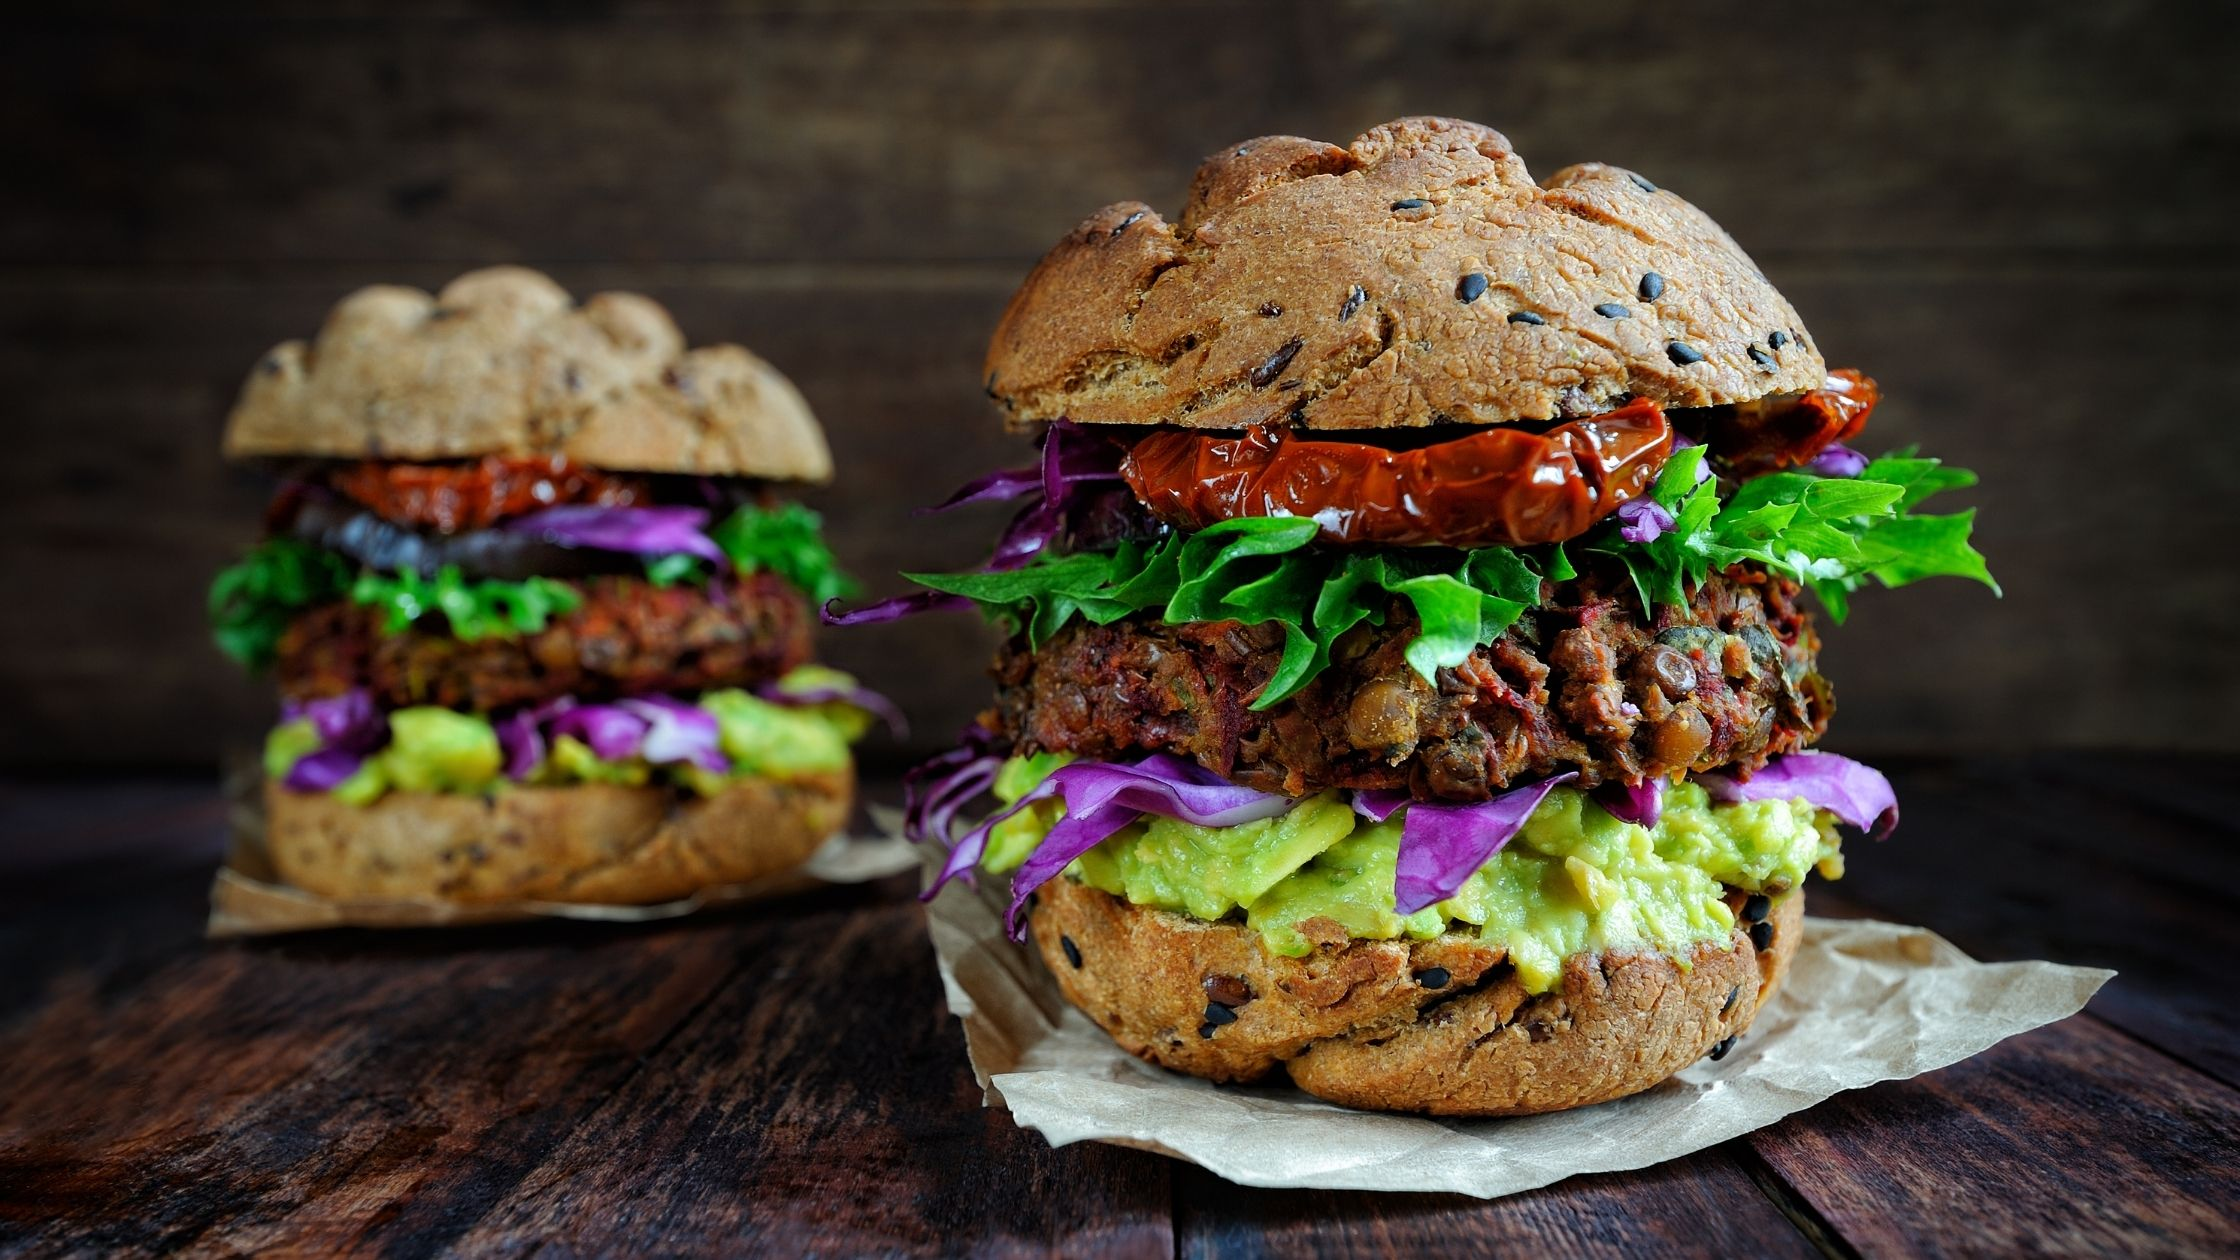 Lowering your carbon footprint with meat alternatives